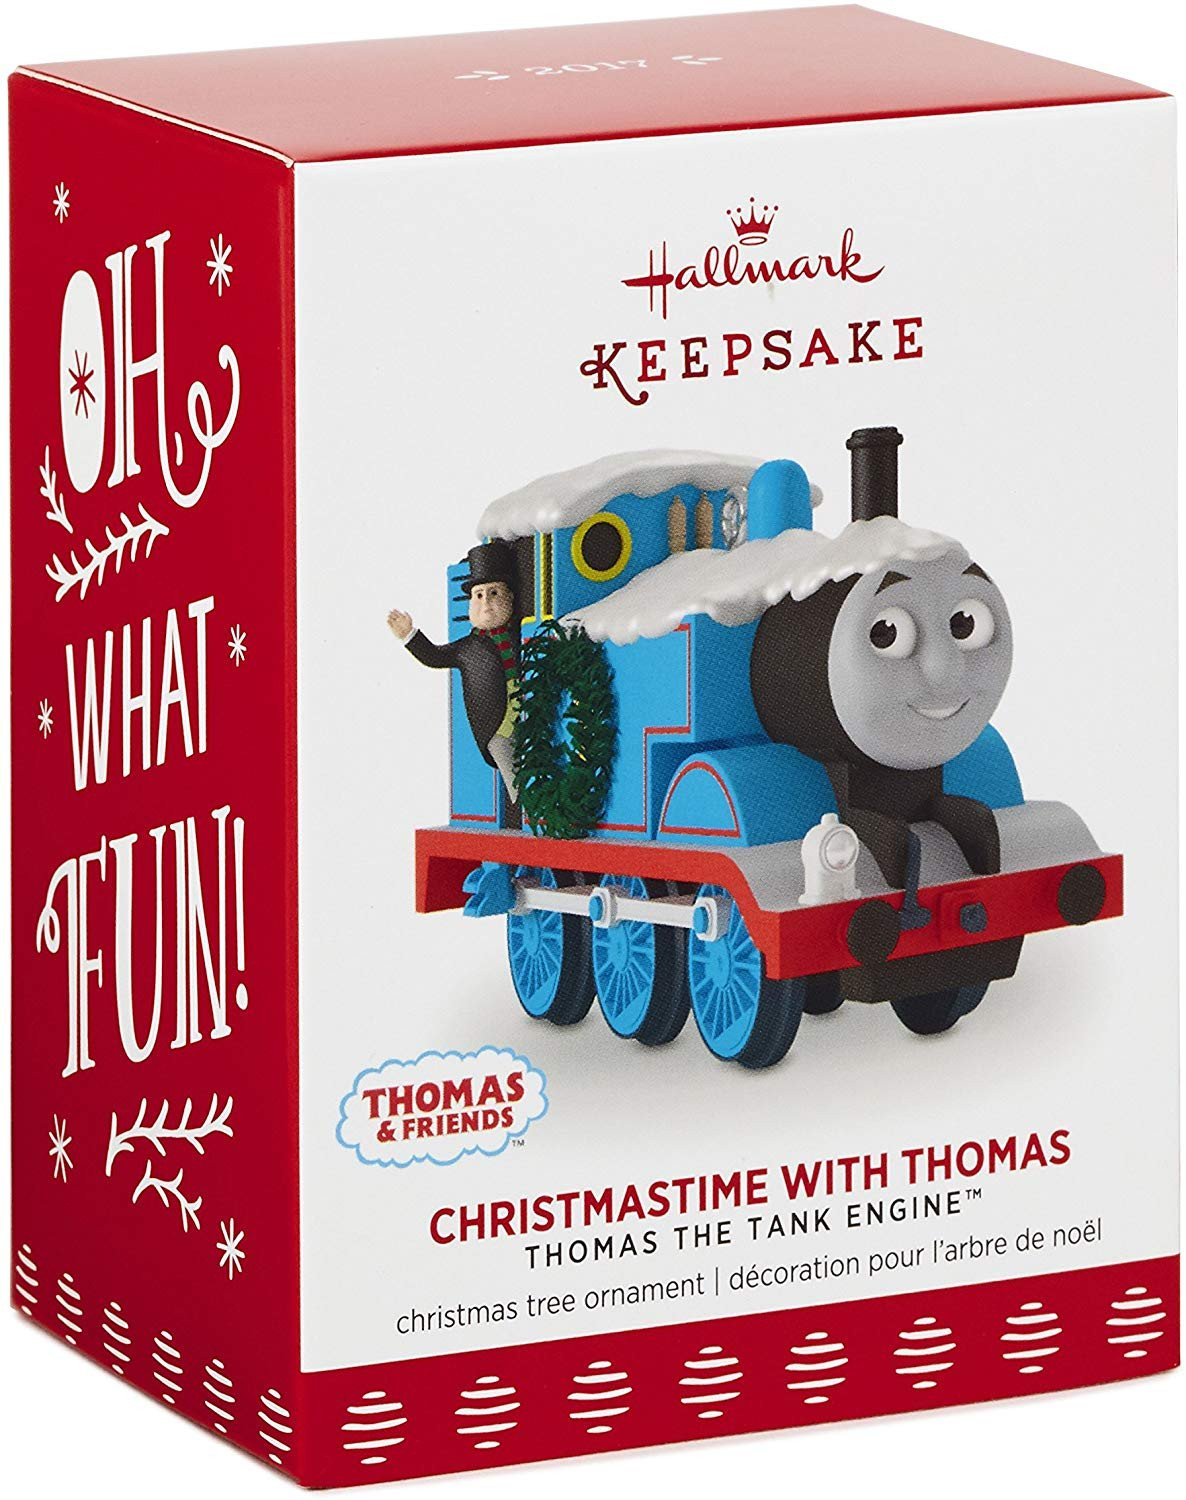 Thomas the Train Bedroom Decor Fresh Hallmark Keepsake 2017 Christmastime with Thomas the Tank Engine Christmas ornament